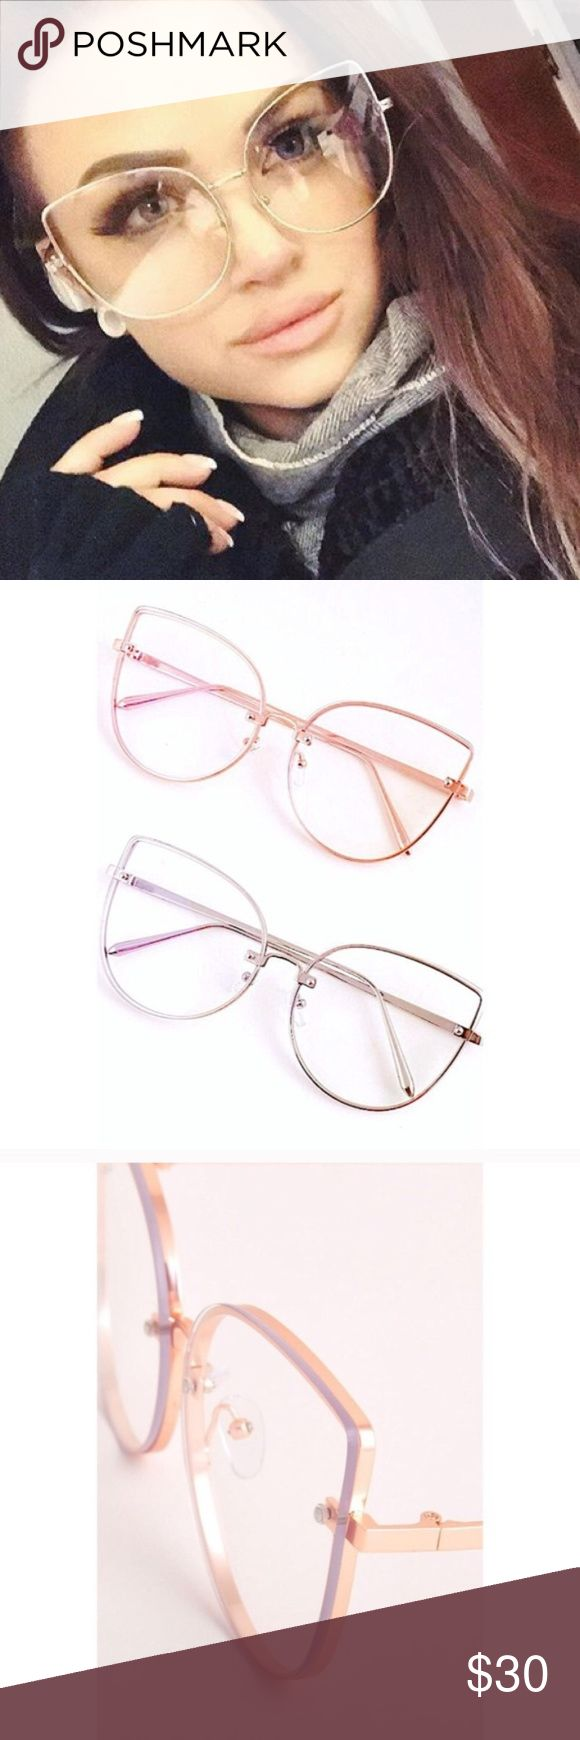 NEW ARRIVAL- Retro cat eye glasses Vintage design cat eye frames with clear lenses Accessories Glasses